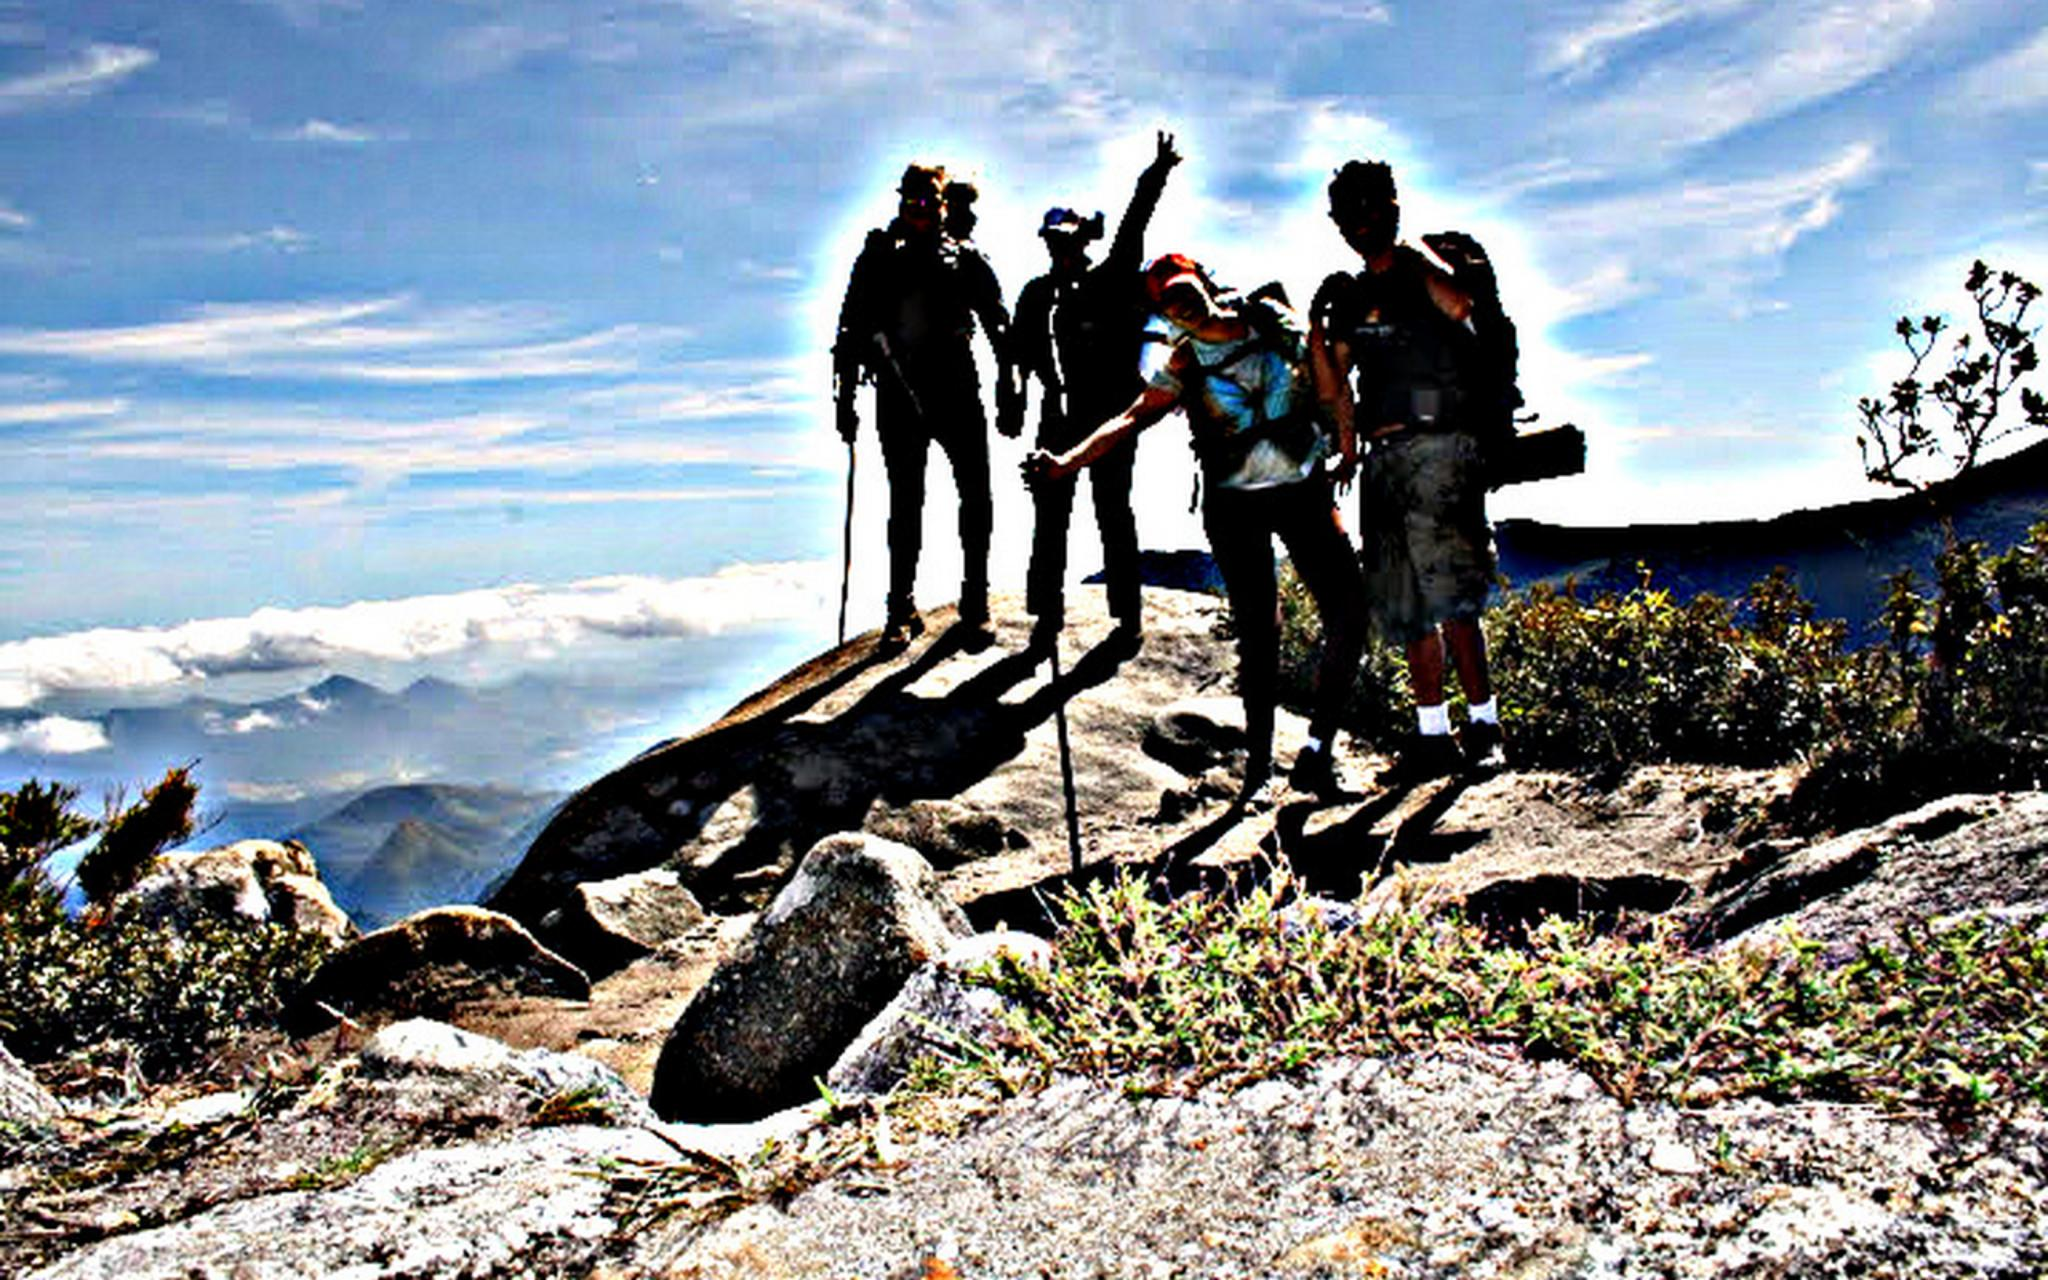 Walking with friends on the mountains by Bruno Aguiar